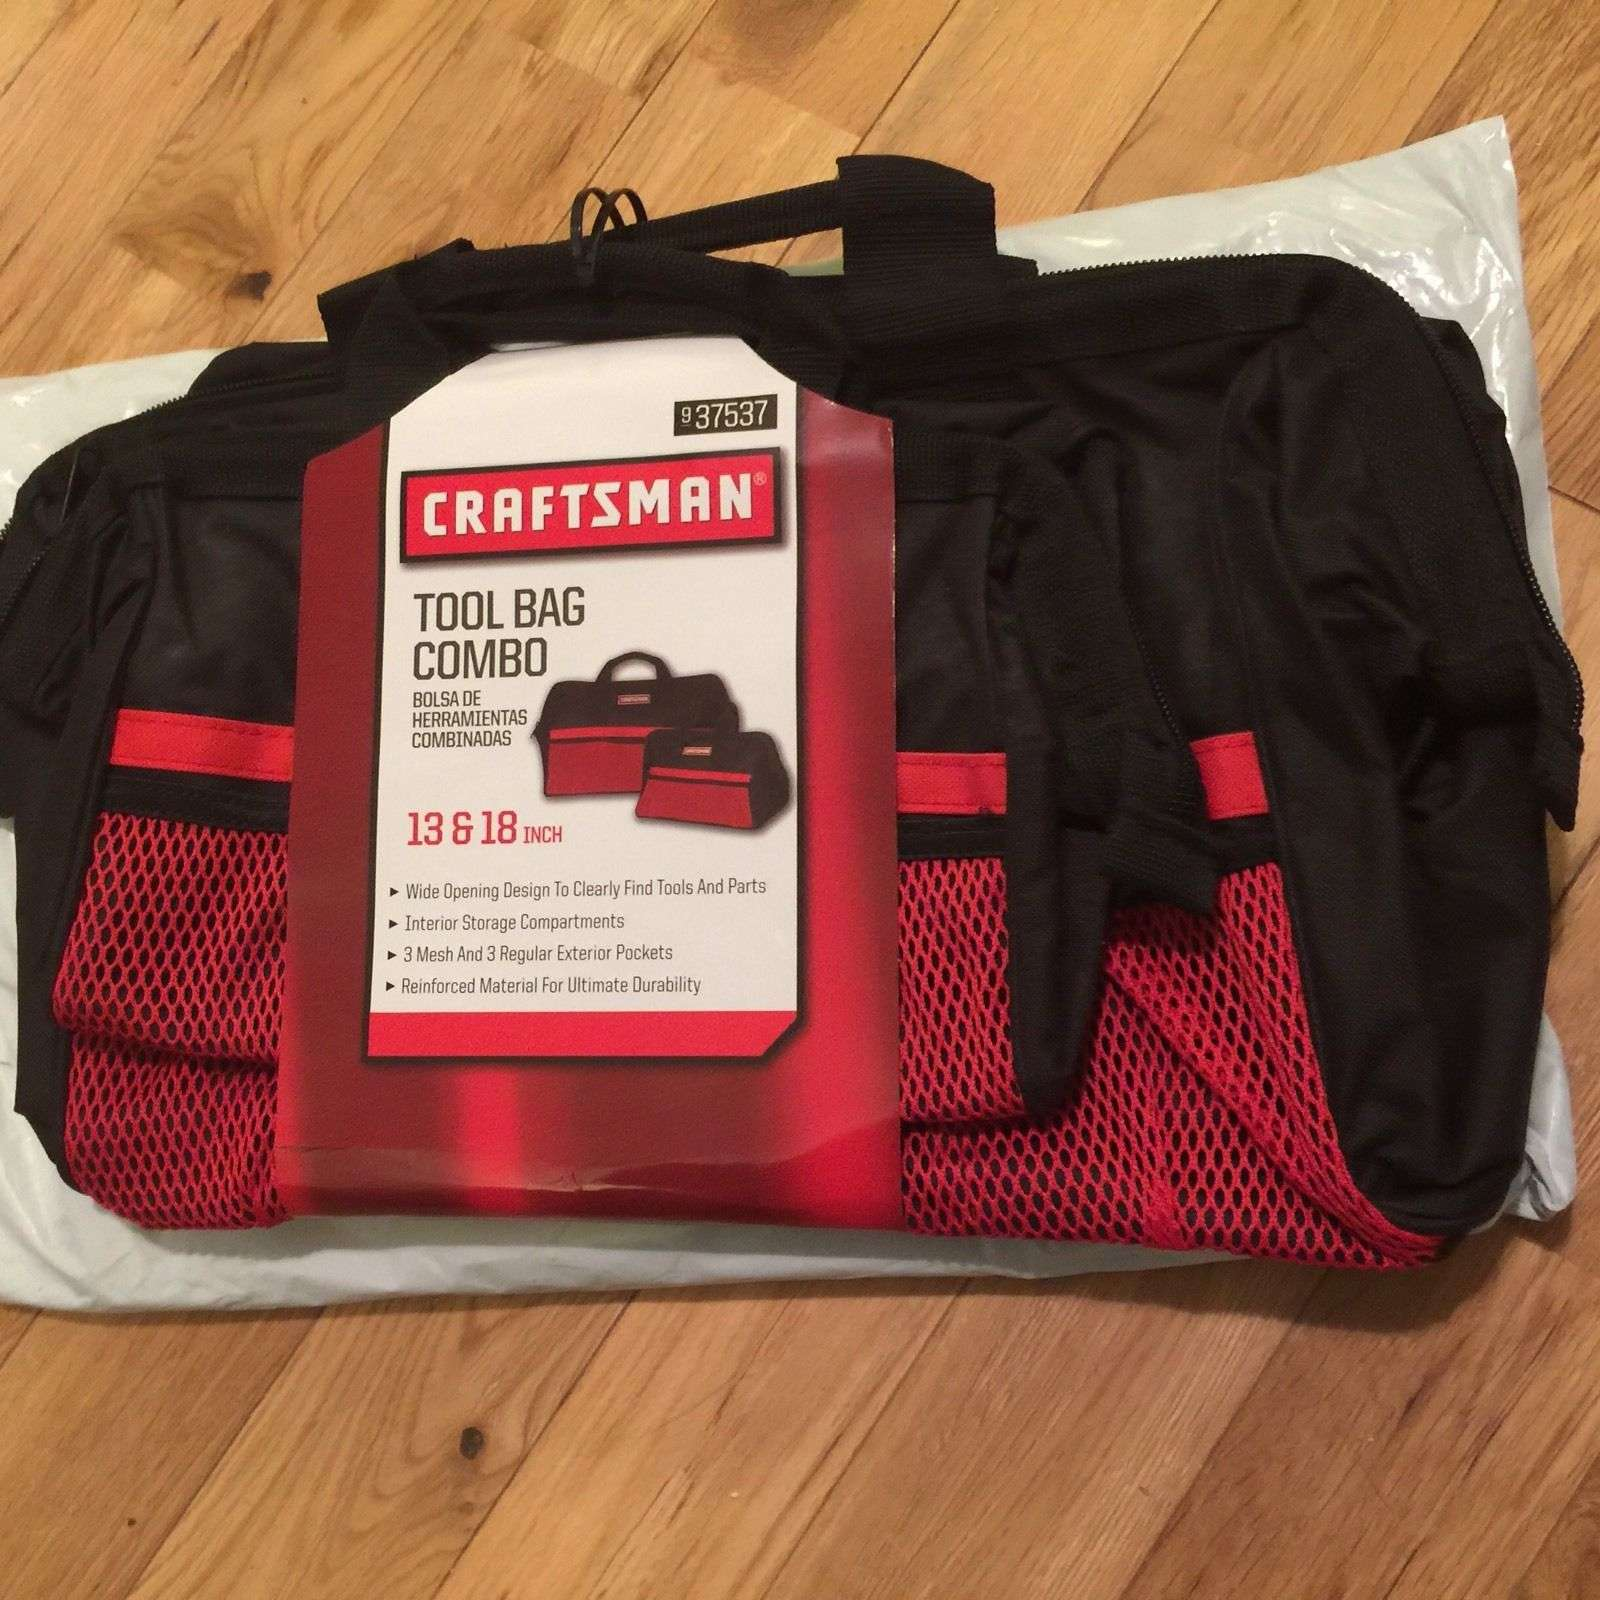 Craftsman Tool Bag Combo 2 Bags 13 18 Inch Black Red Fast Free Shipping For Item 1066863